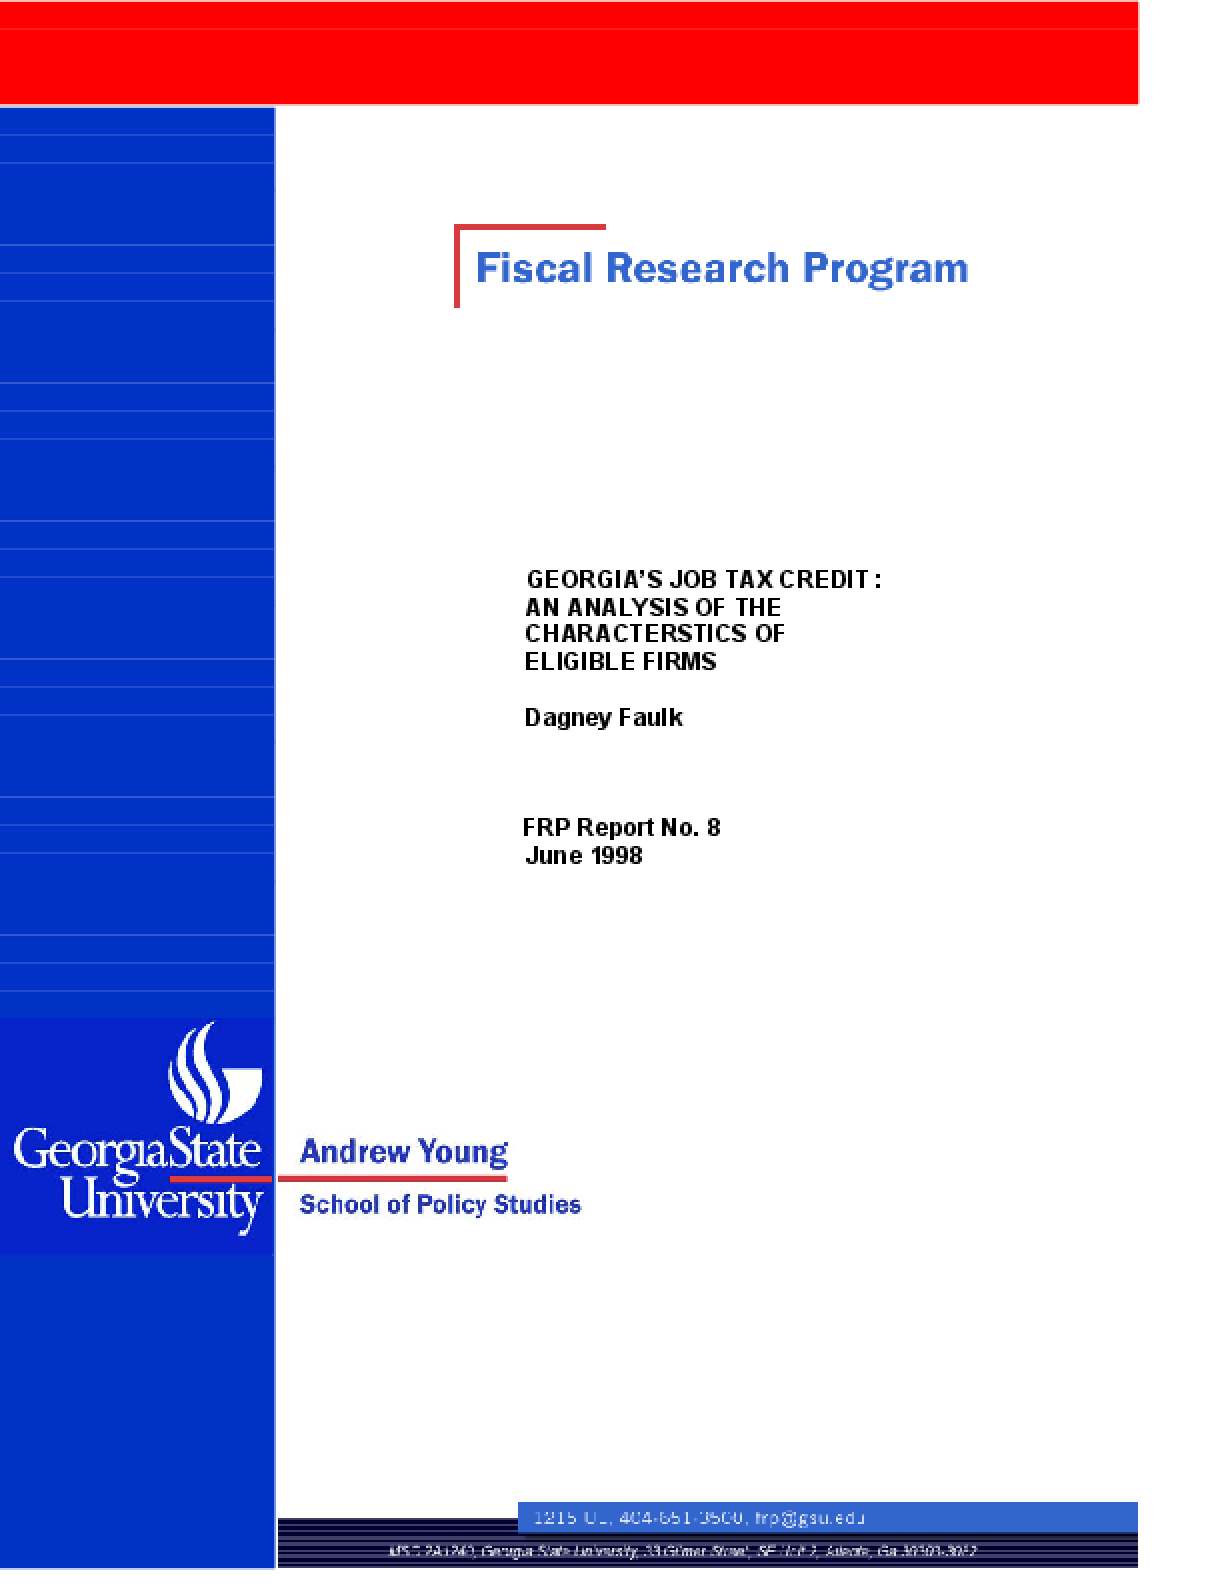 Georgia's Job Tax Credit: An Analysis of the Characteristics of Eligible Firms